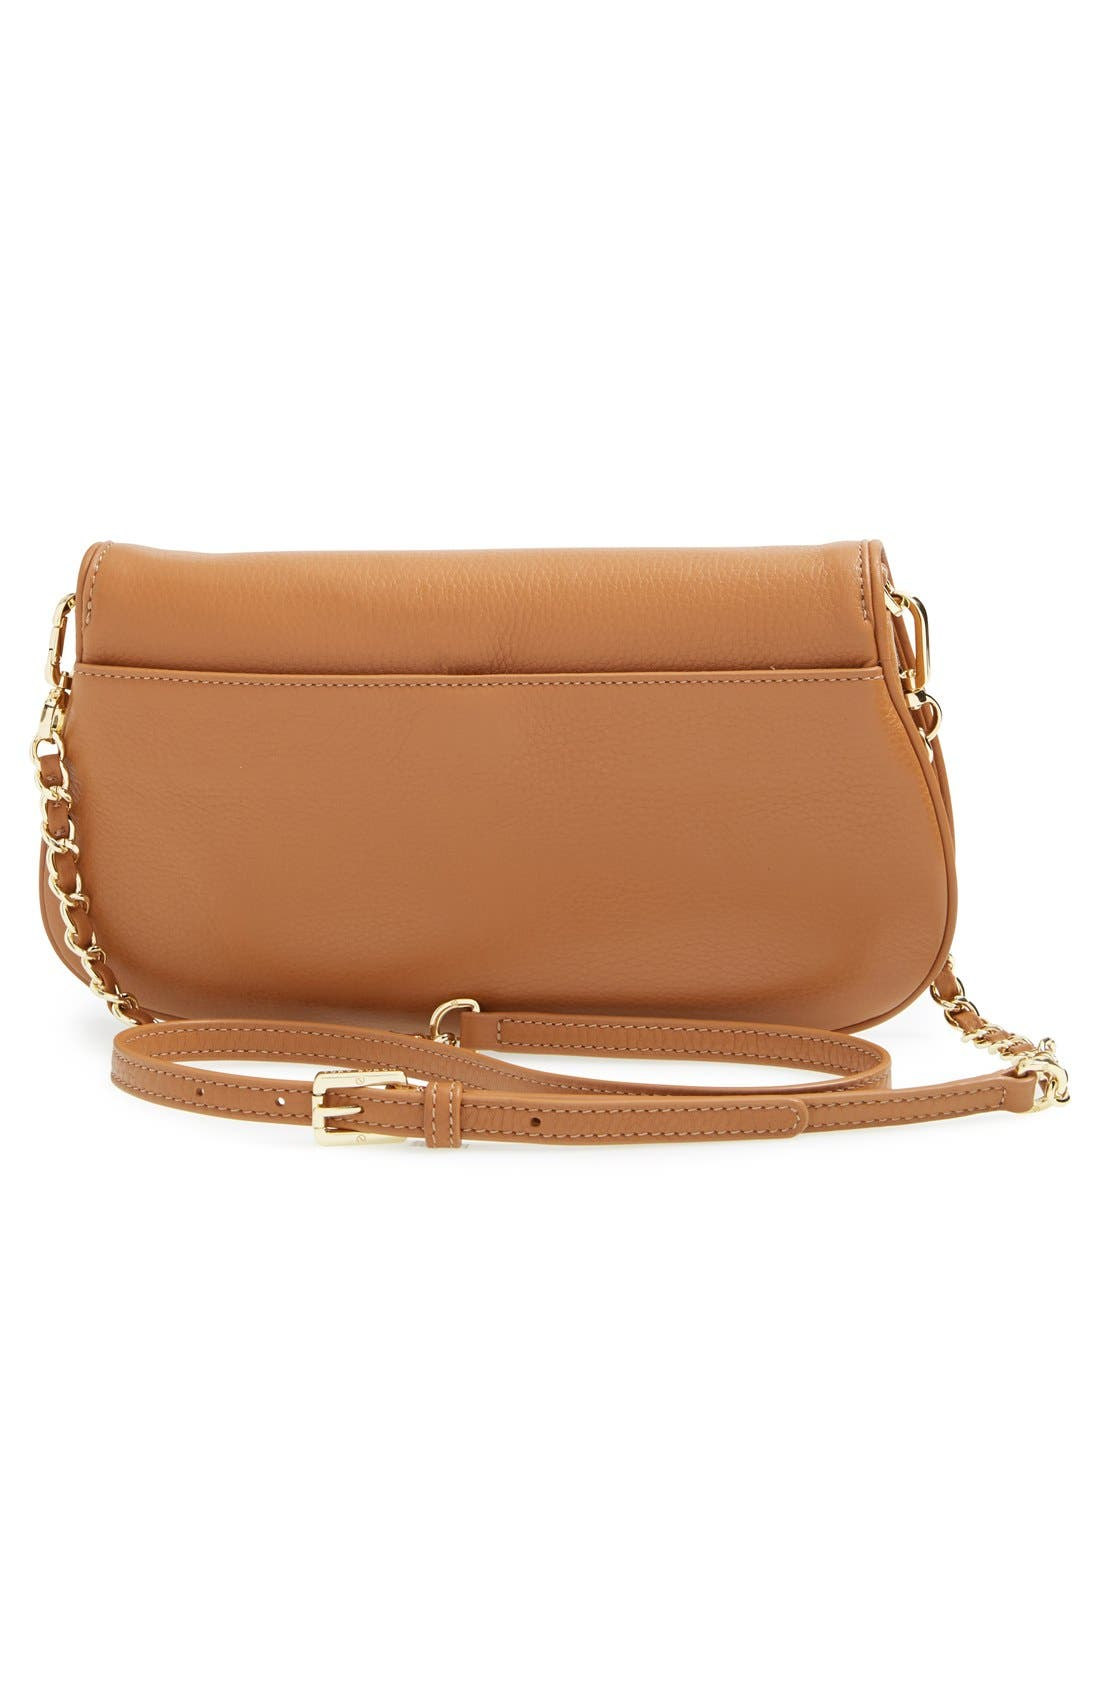 Alternate Image 3  - Tory Burch 'Britten' Leather Clutch